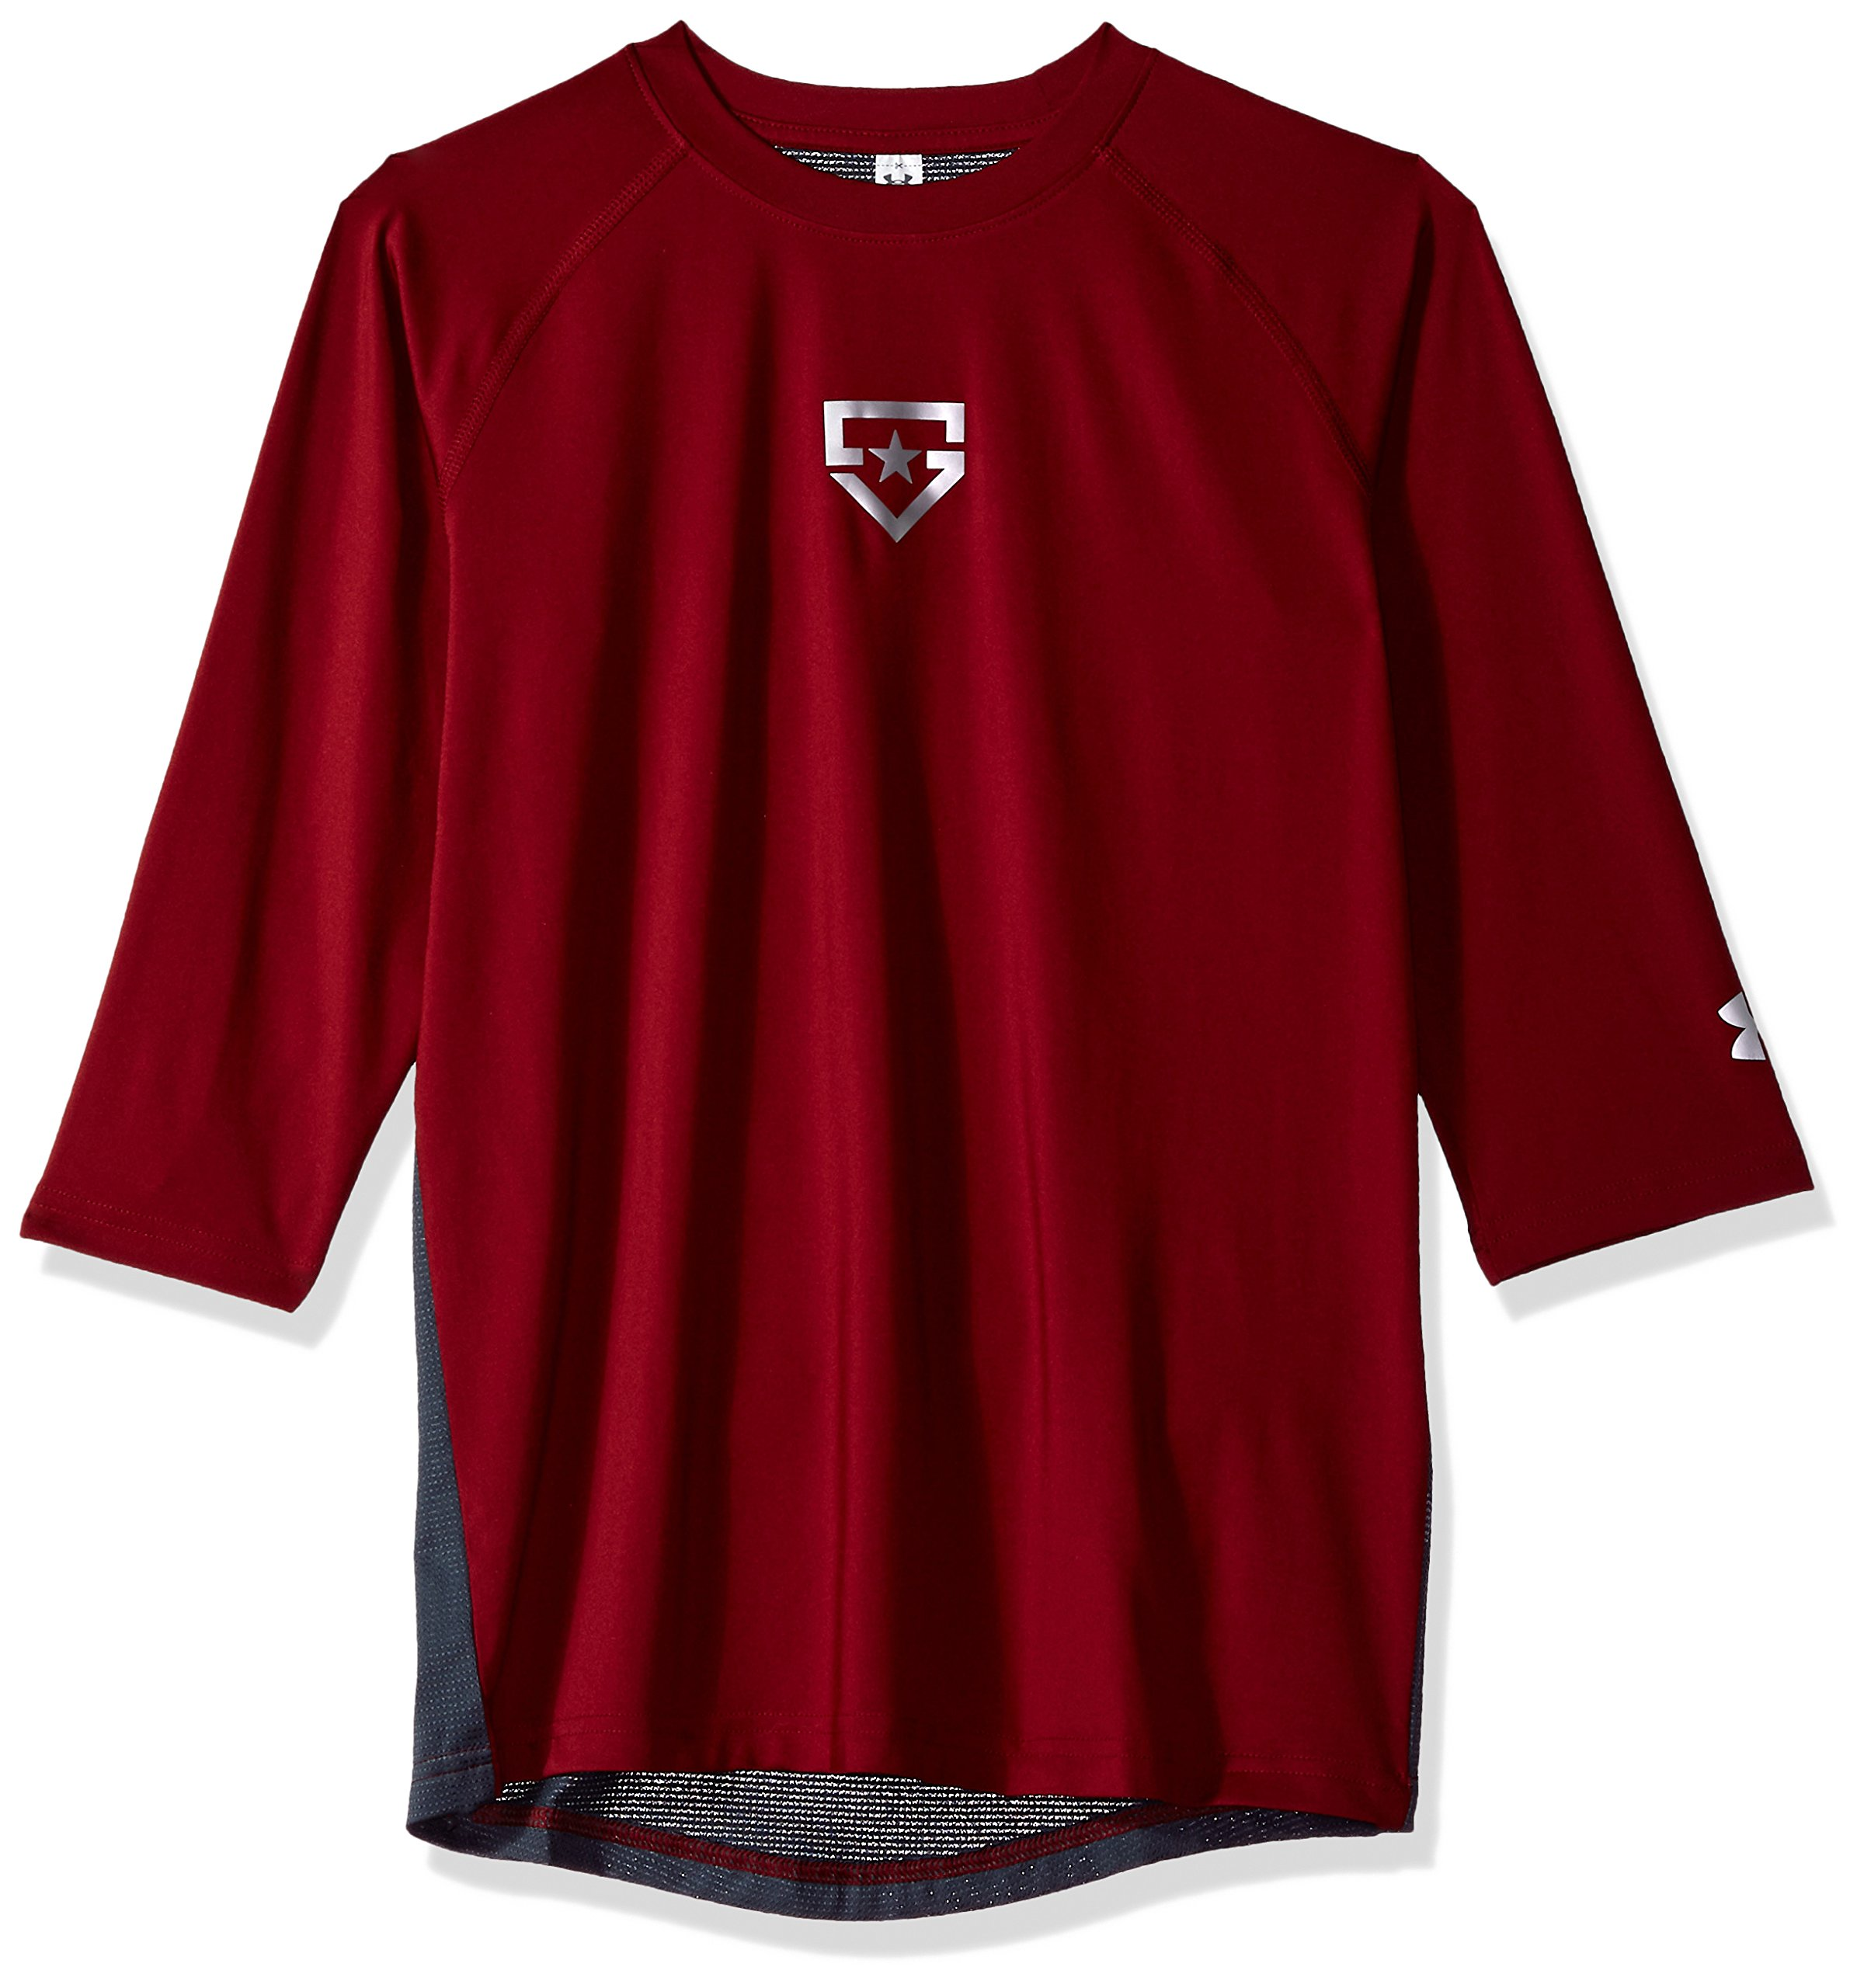 Boy's Under Armour Boys' Heater 3/4 sleeve T-Shirt, Cardinal (625)/Silver, Youth Large by Under Armour